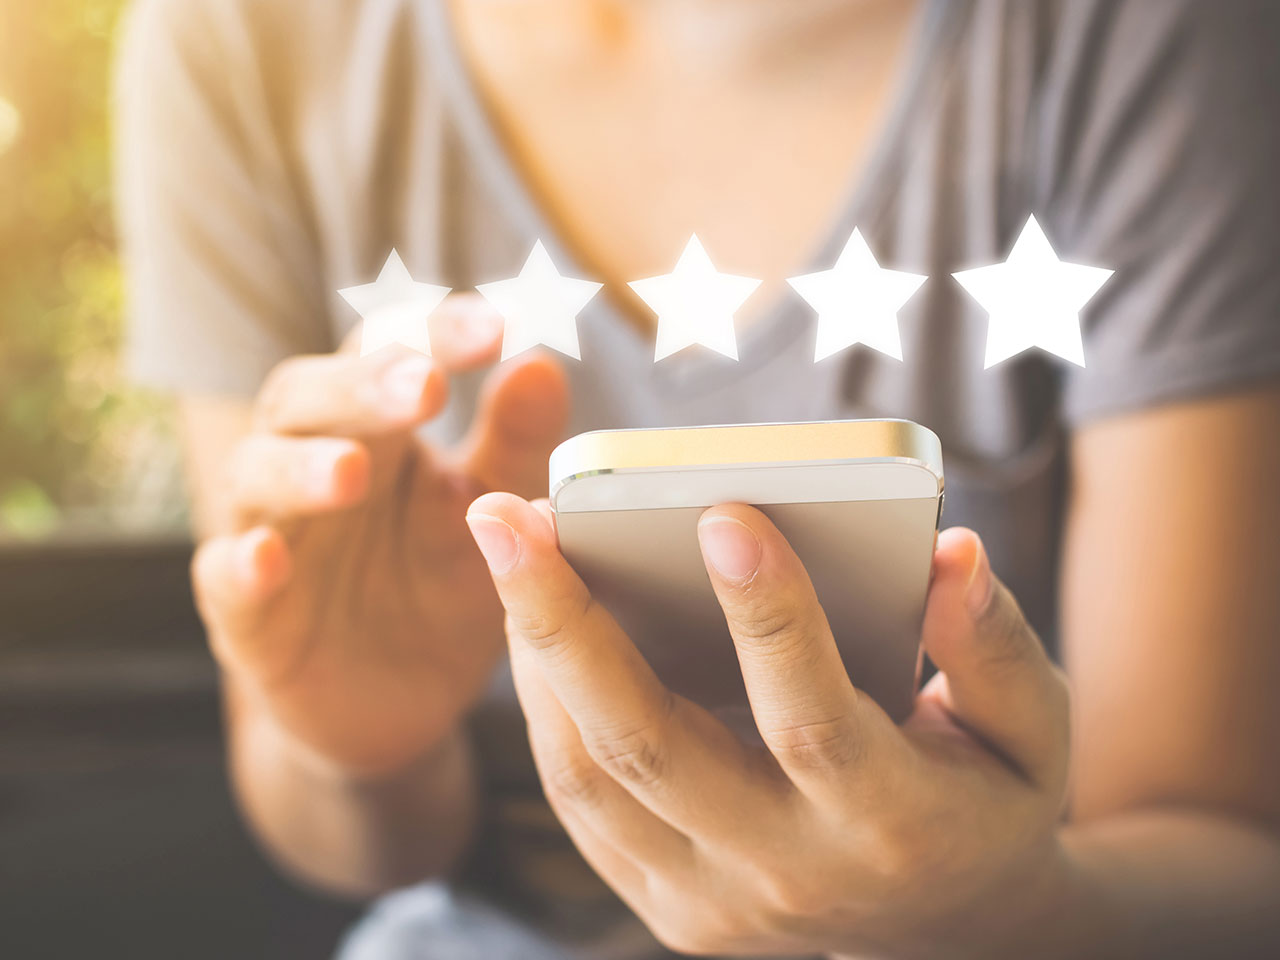 photo of a person holding a smarthphone with 5 stars imposed over the phone, as in Star rating